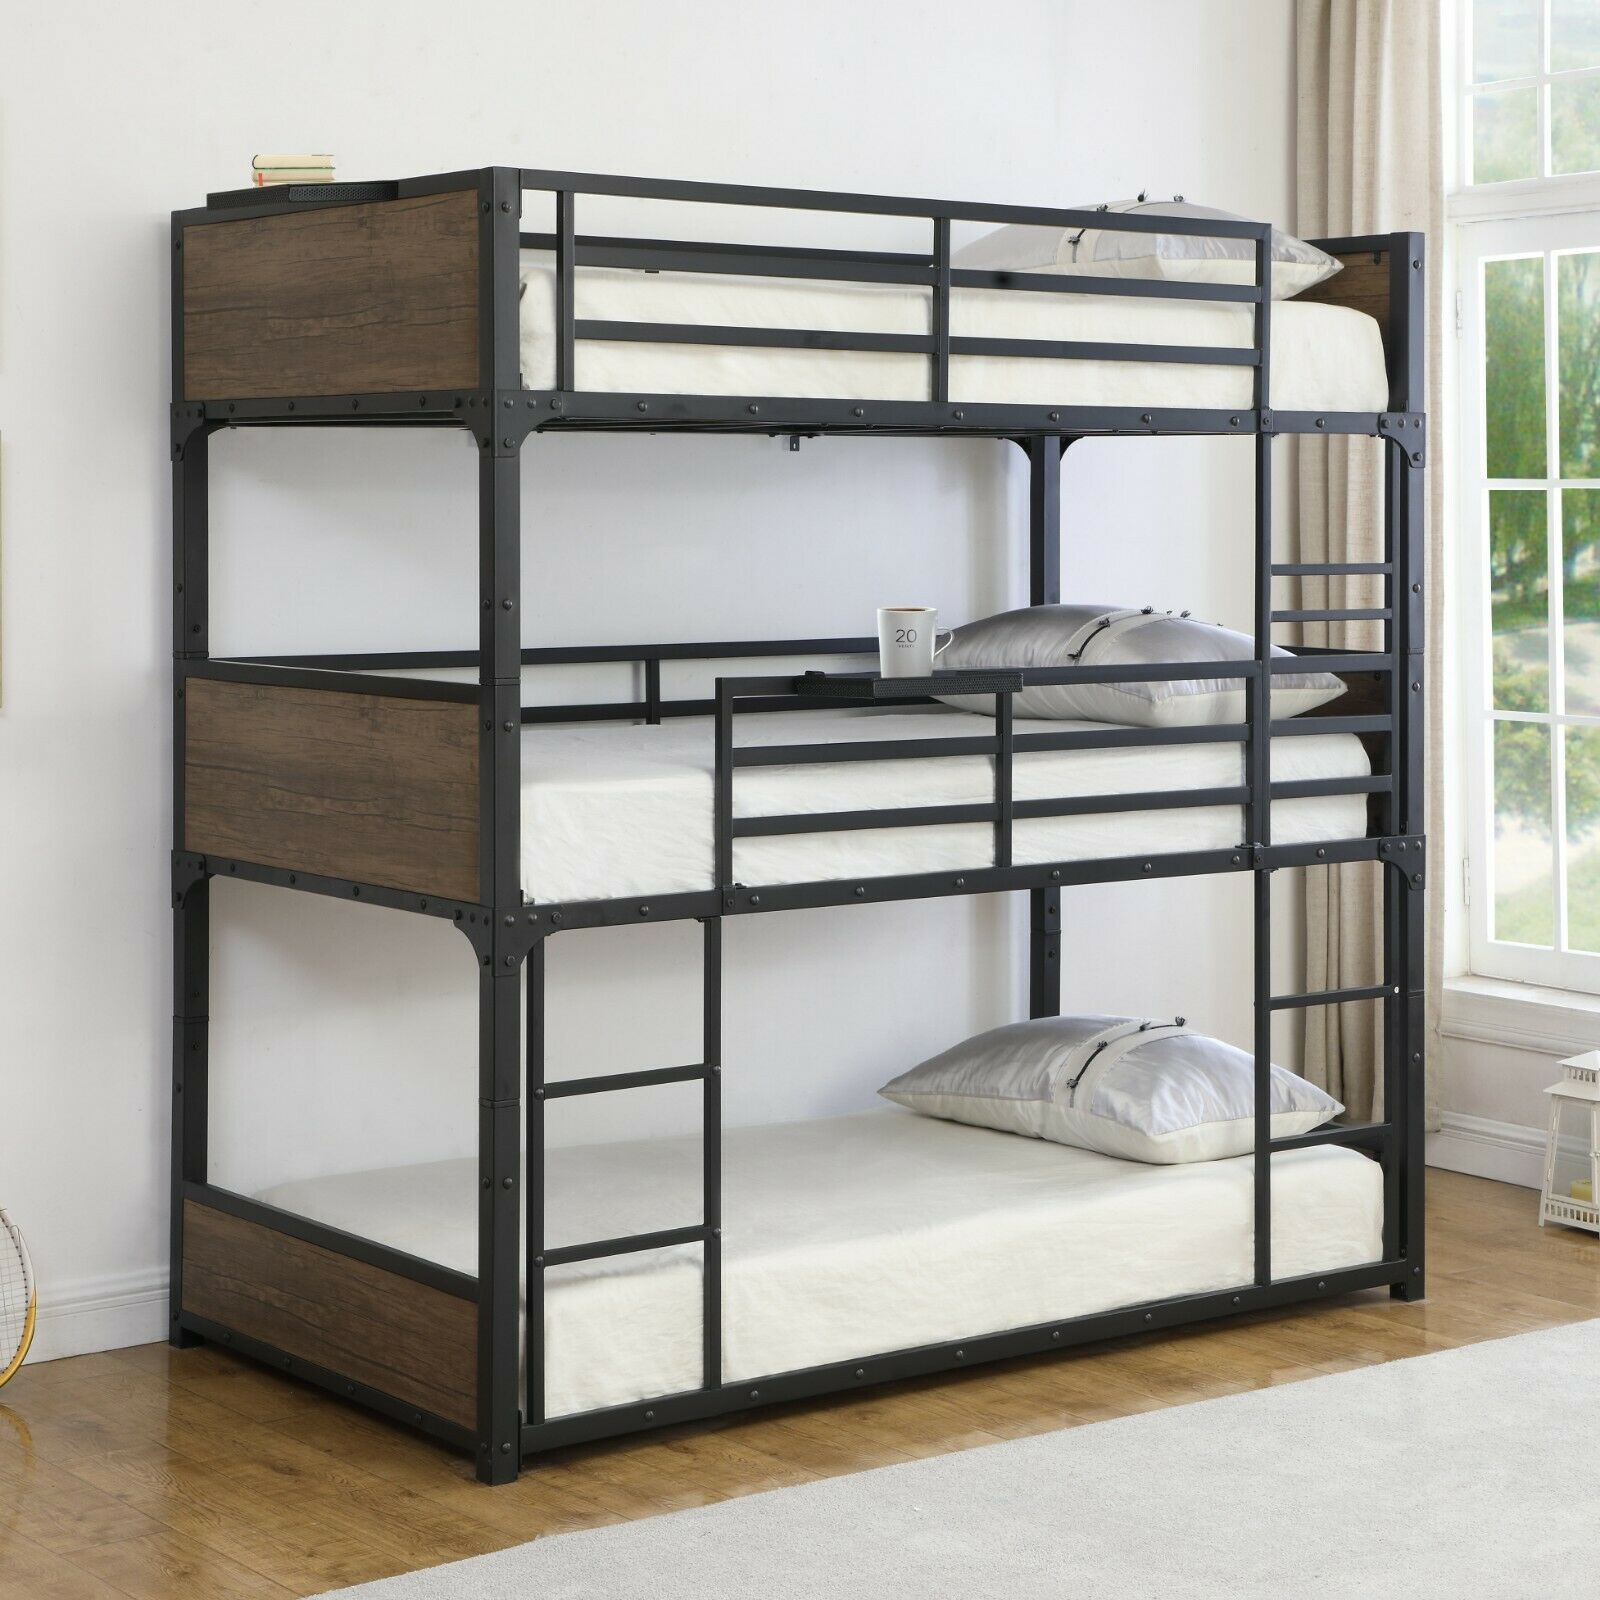 Industrial Heavy Duty Metal Bunk Bed with Mattresses Include